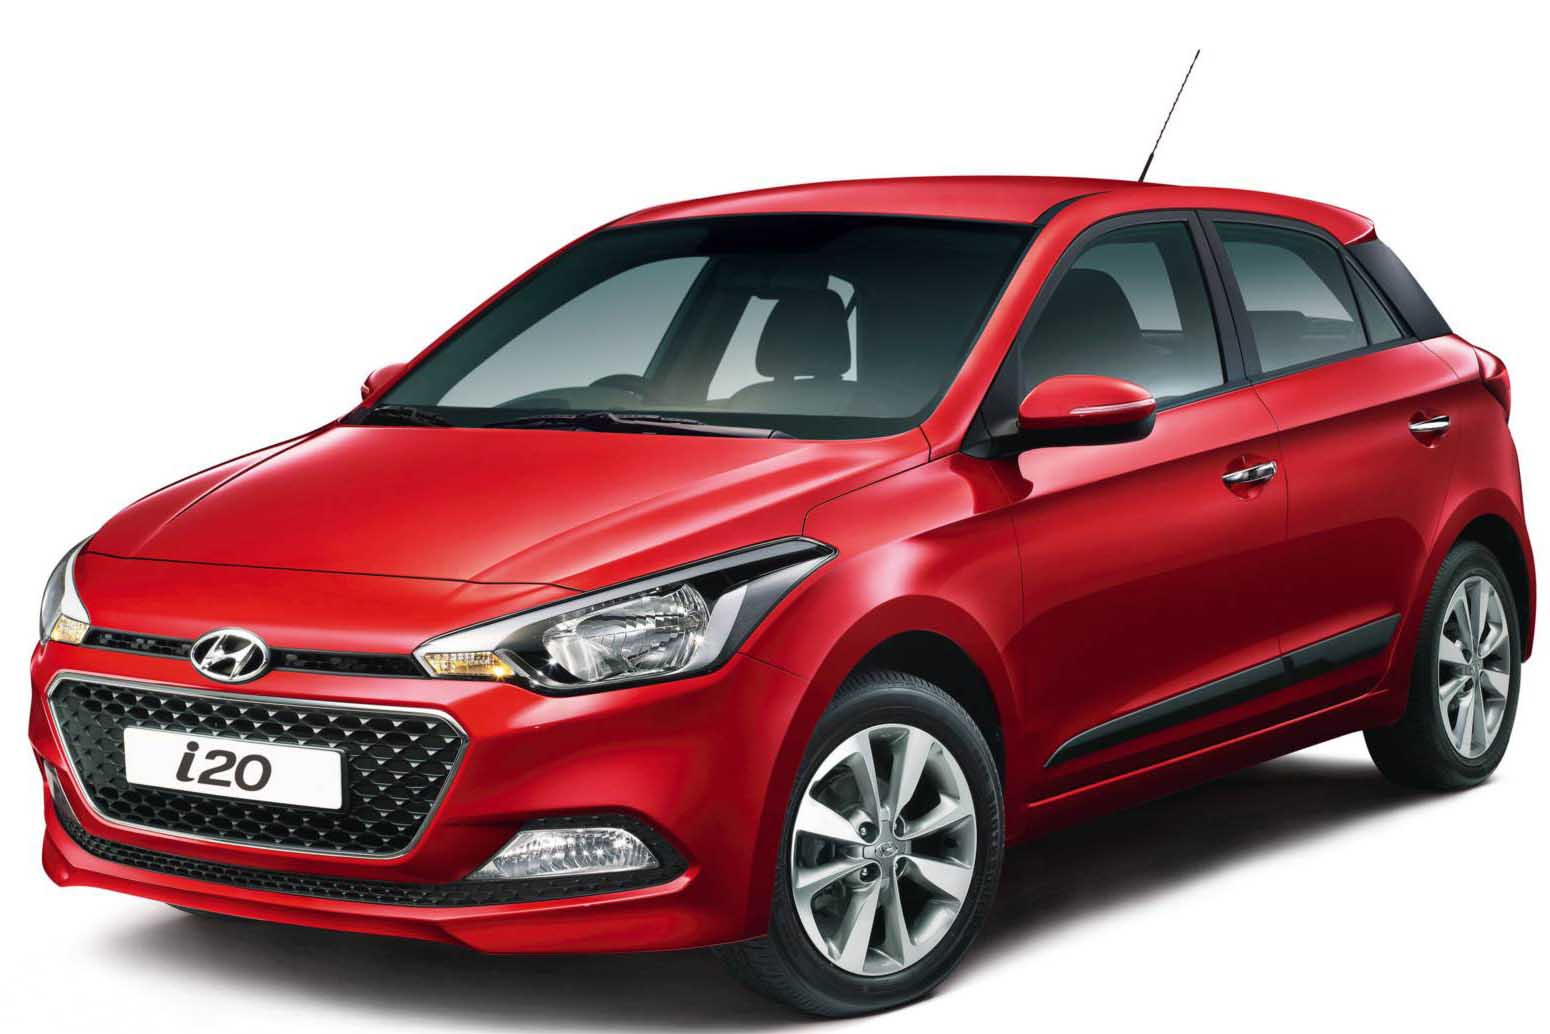 HYUNDAI I20 (or similar)